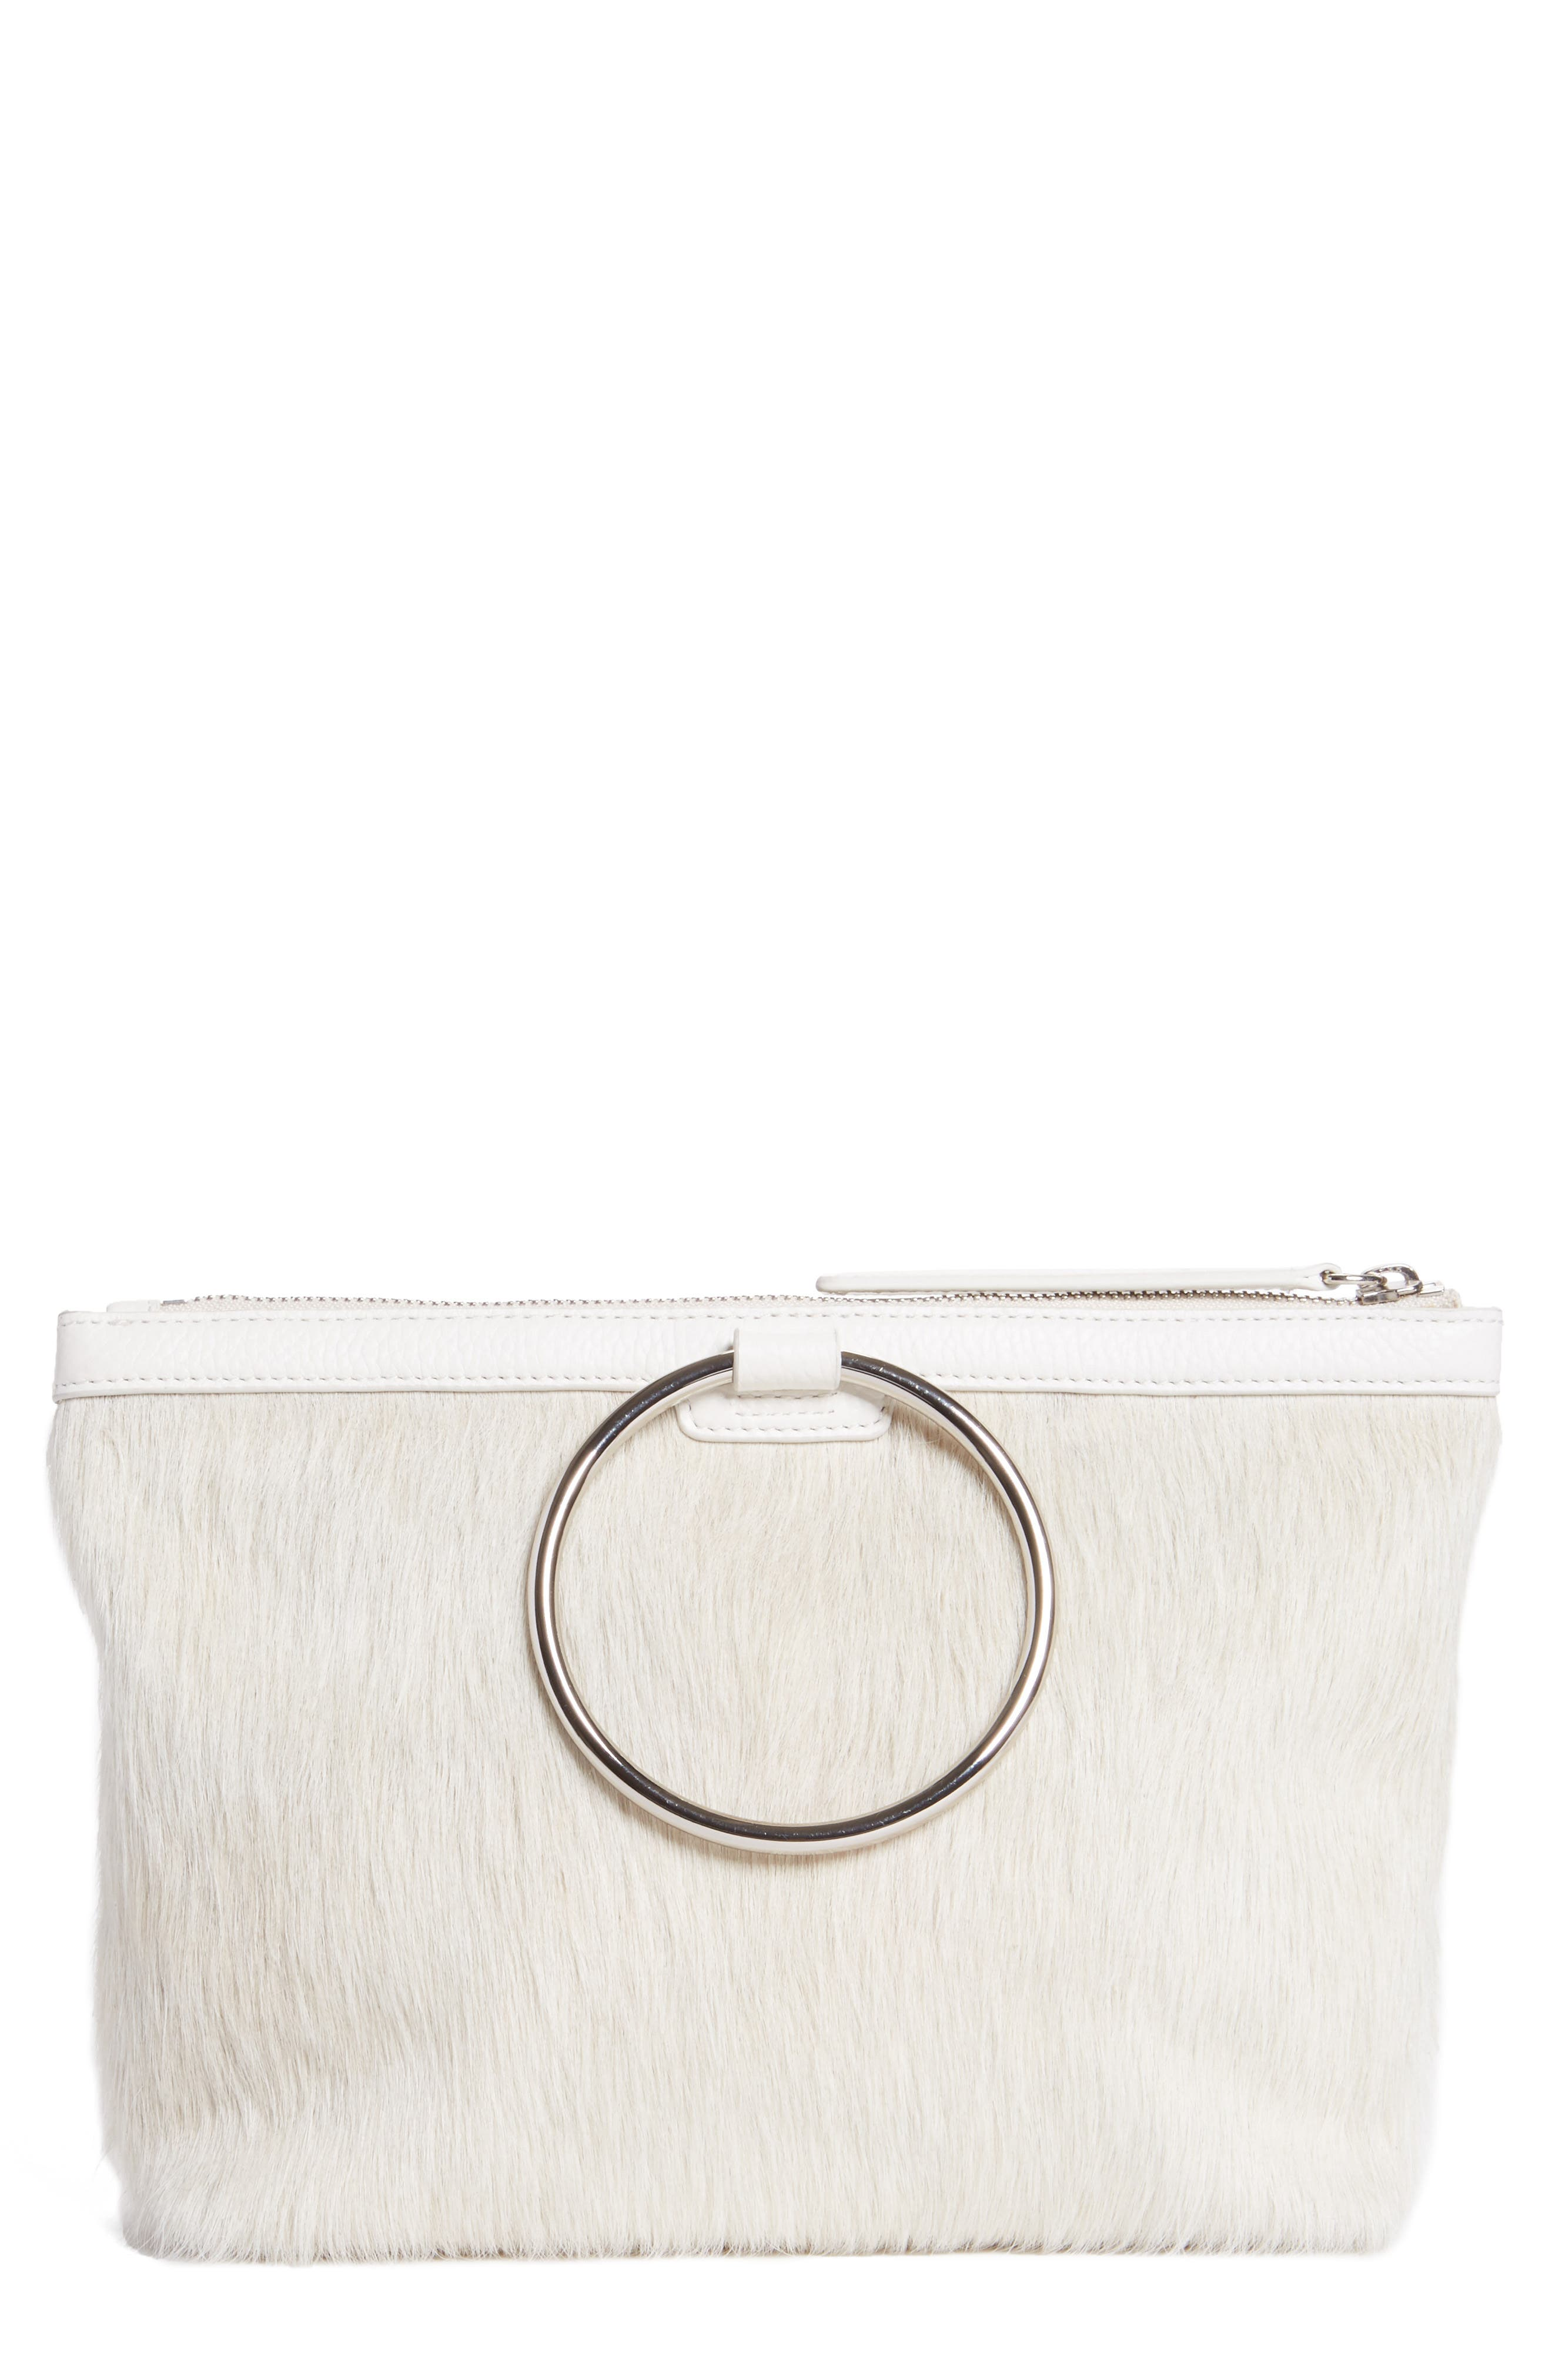 Main Image - KARA Genuine Calf Hair Ring Clutch